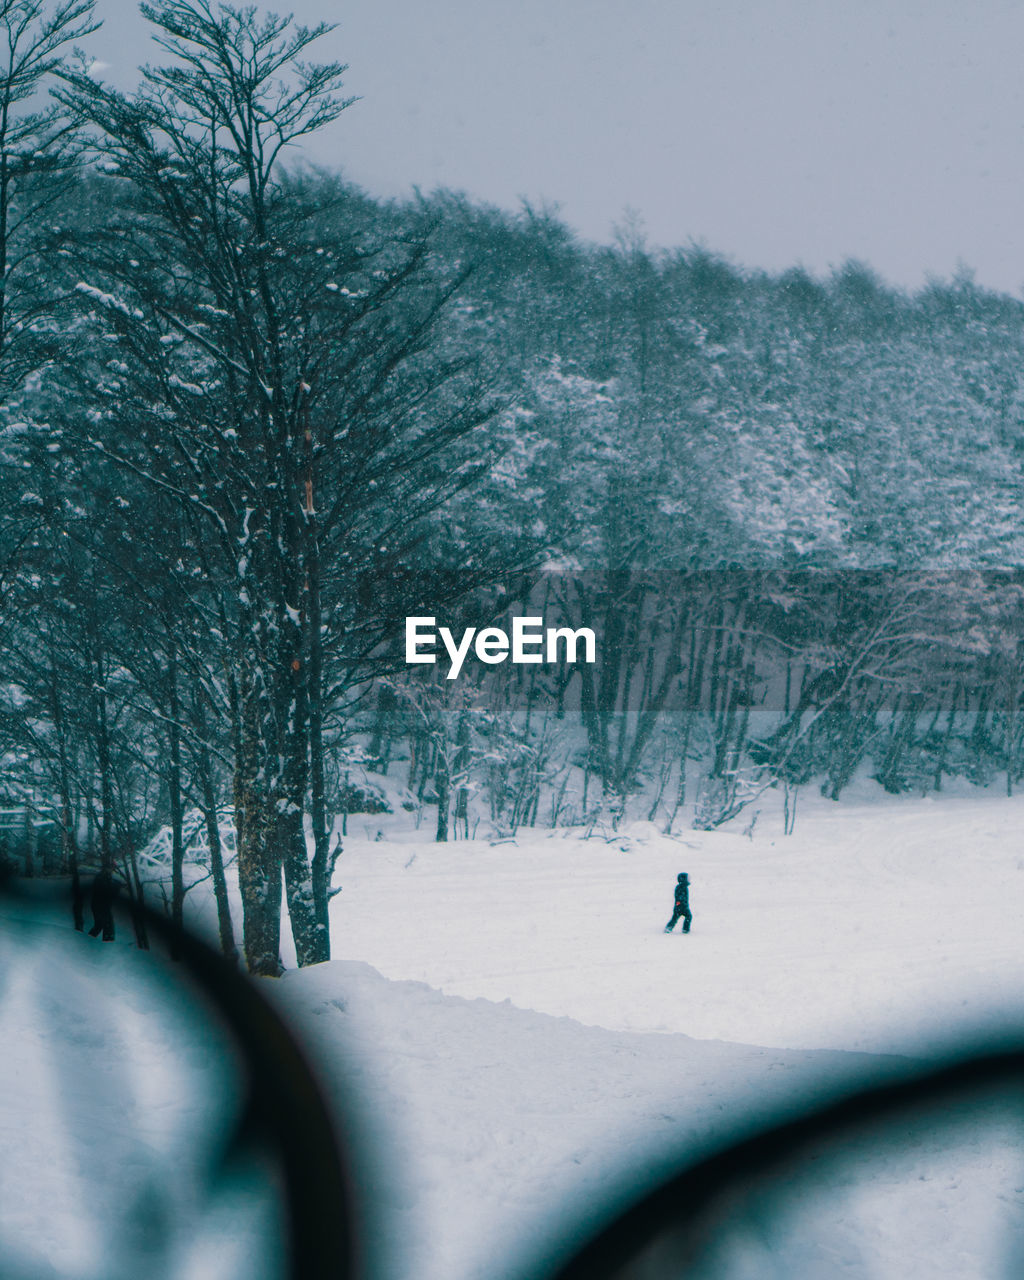 Distant view of person walking on snowy landscape